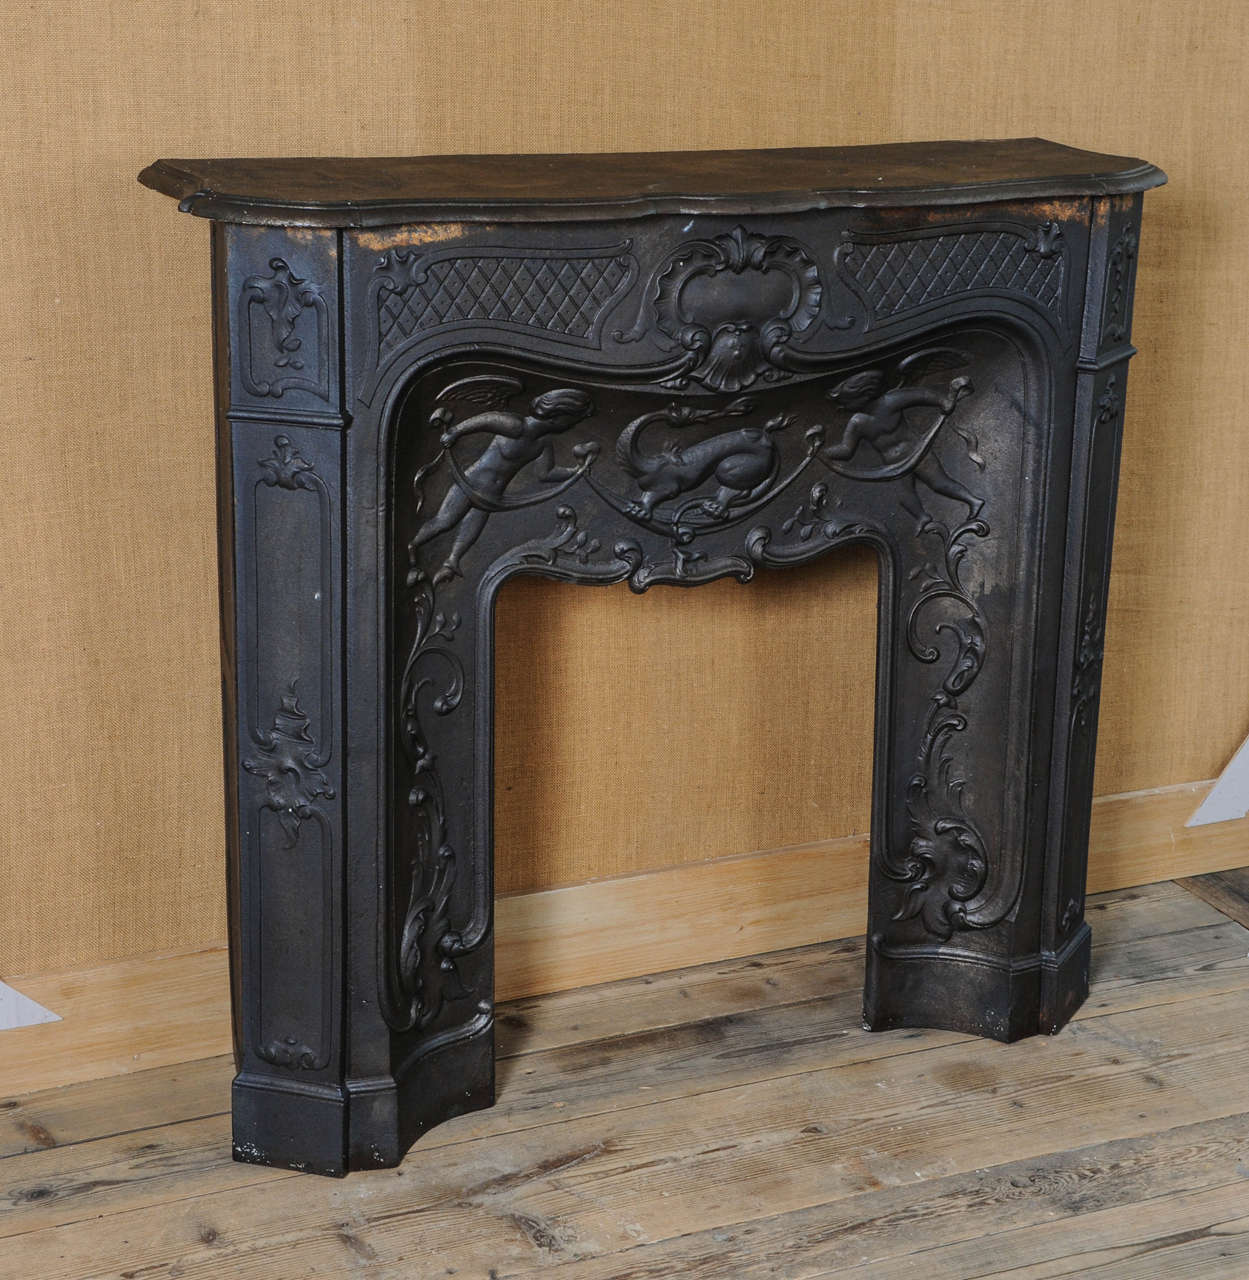 Rare 19th century french cast iron pompadour fireplace mantel piece at 1stdibs - Fireplace mantel piece ...